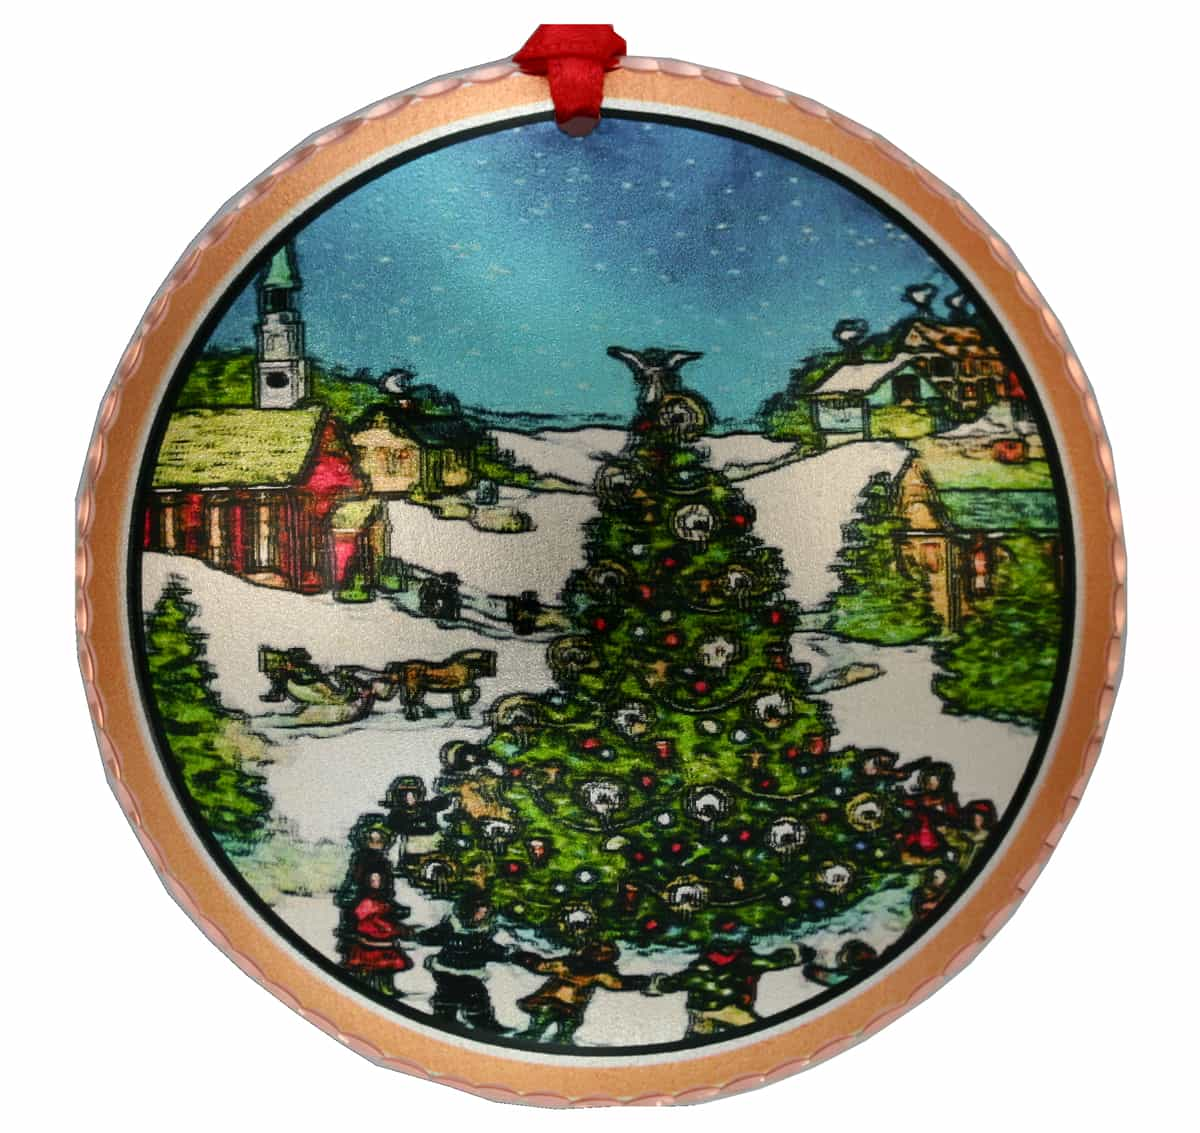 Handmade Christmas Tree Ornament Created in Town Square Tree Design